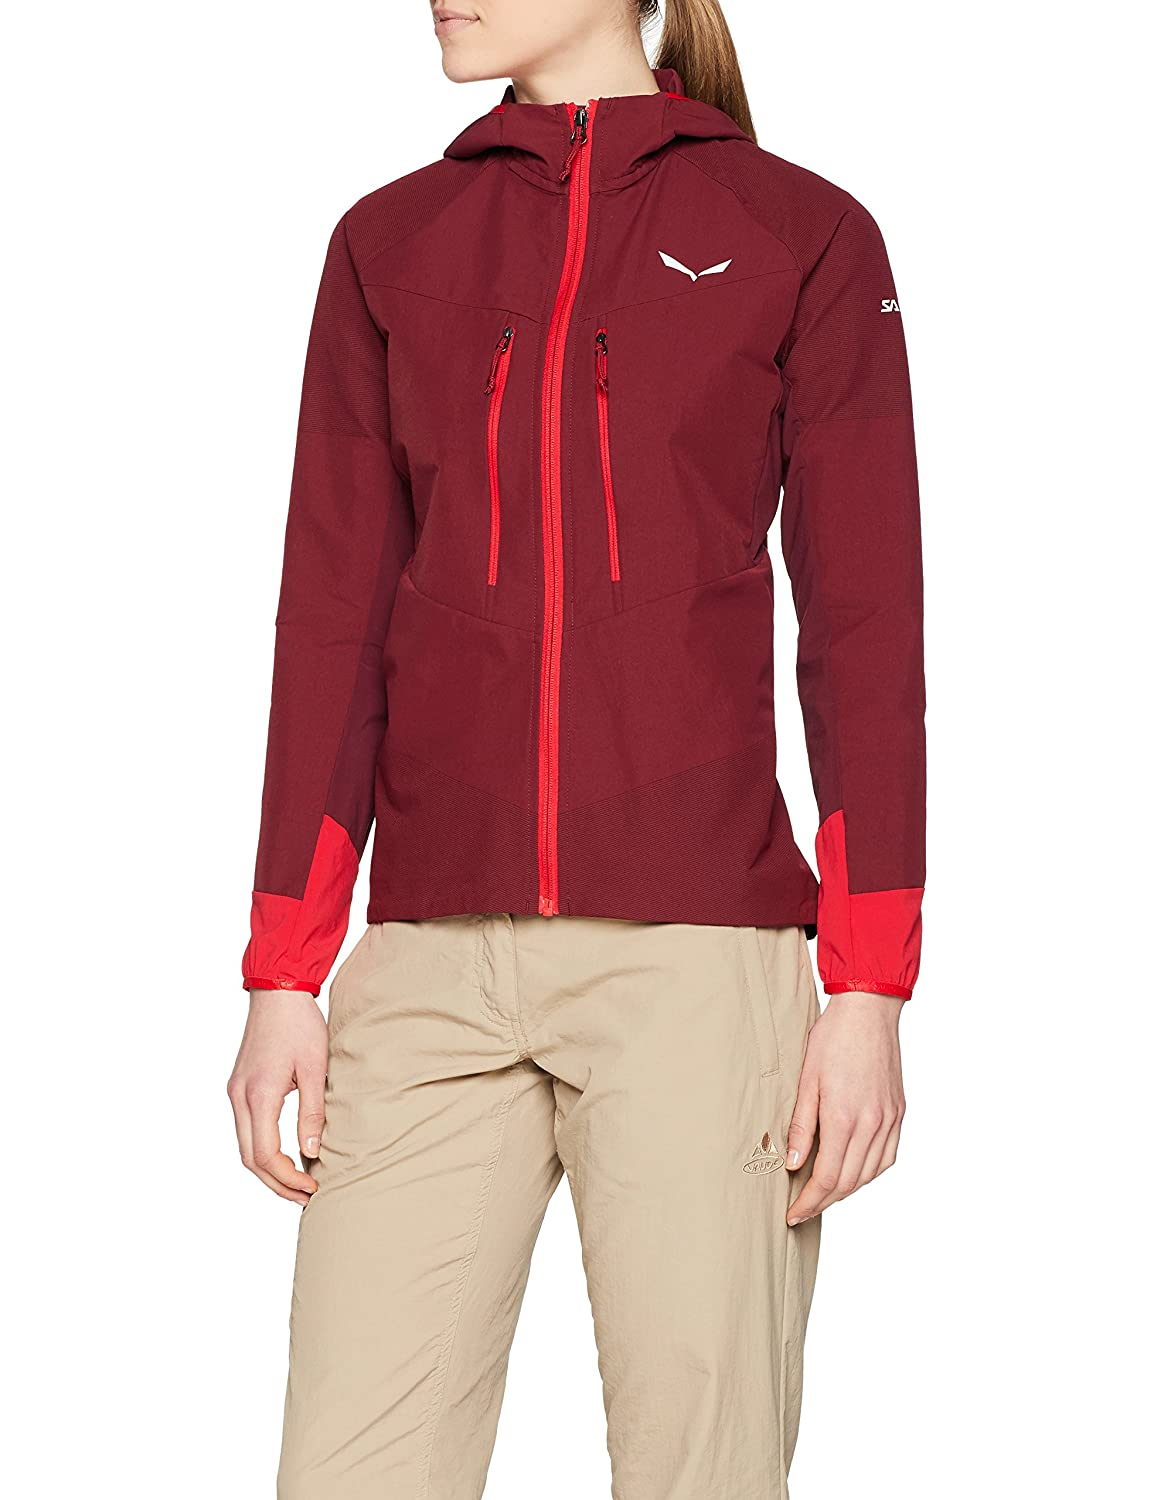 Giacca Sportiva Donna SALEWA Agner Engineered Dst W Jkt